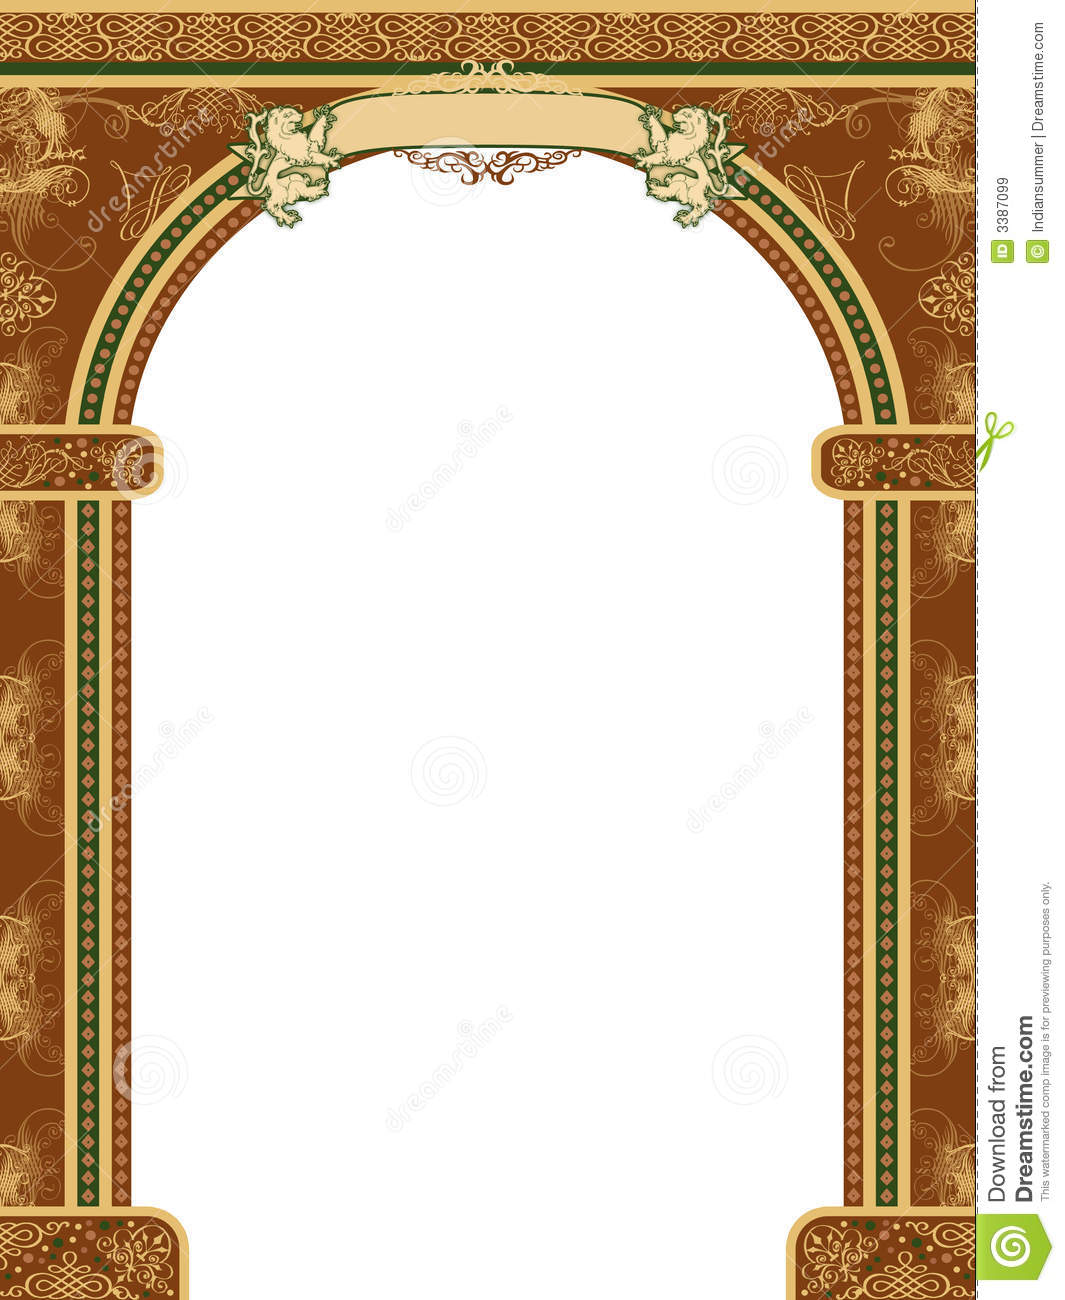 House Designs And Floor Plans In India Arch With Ornaments And Banner Stock Illustration Image